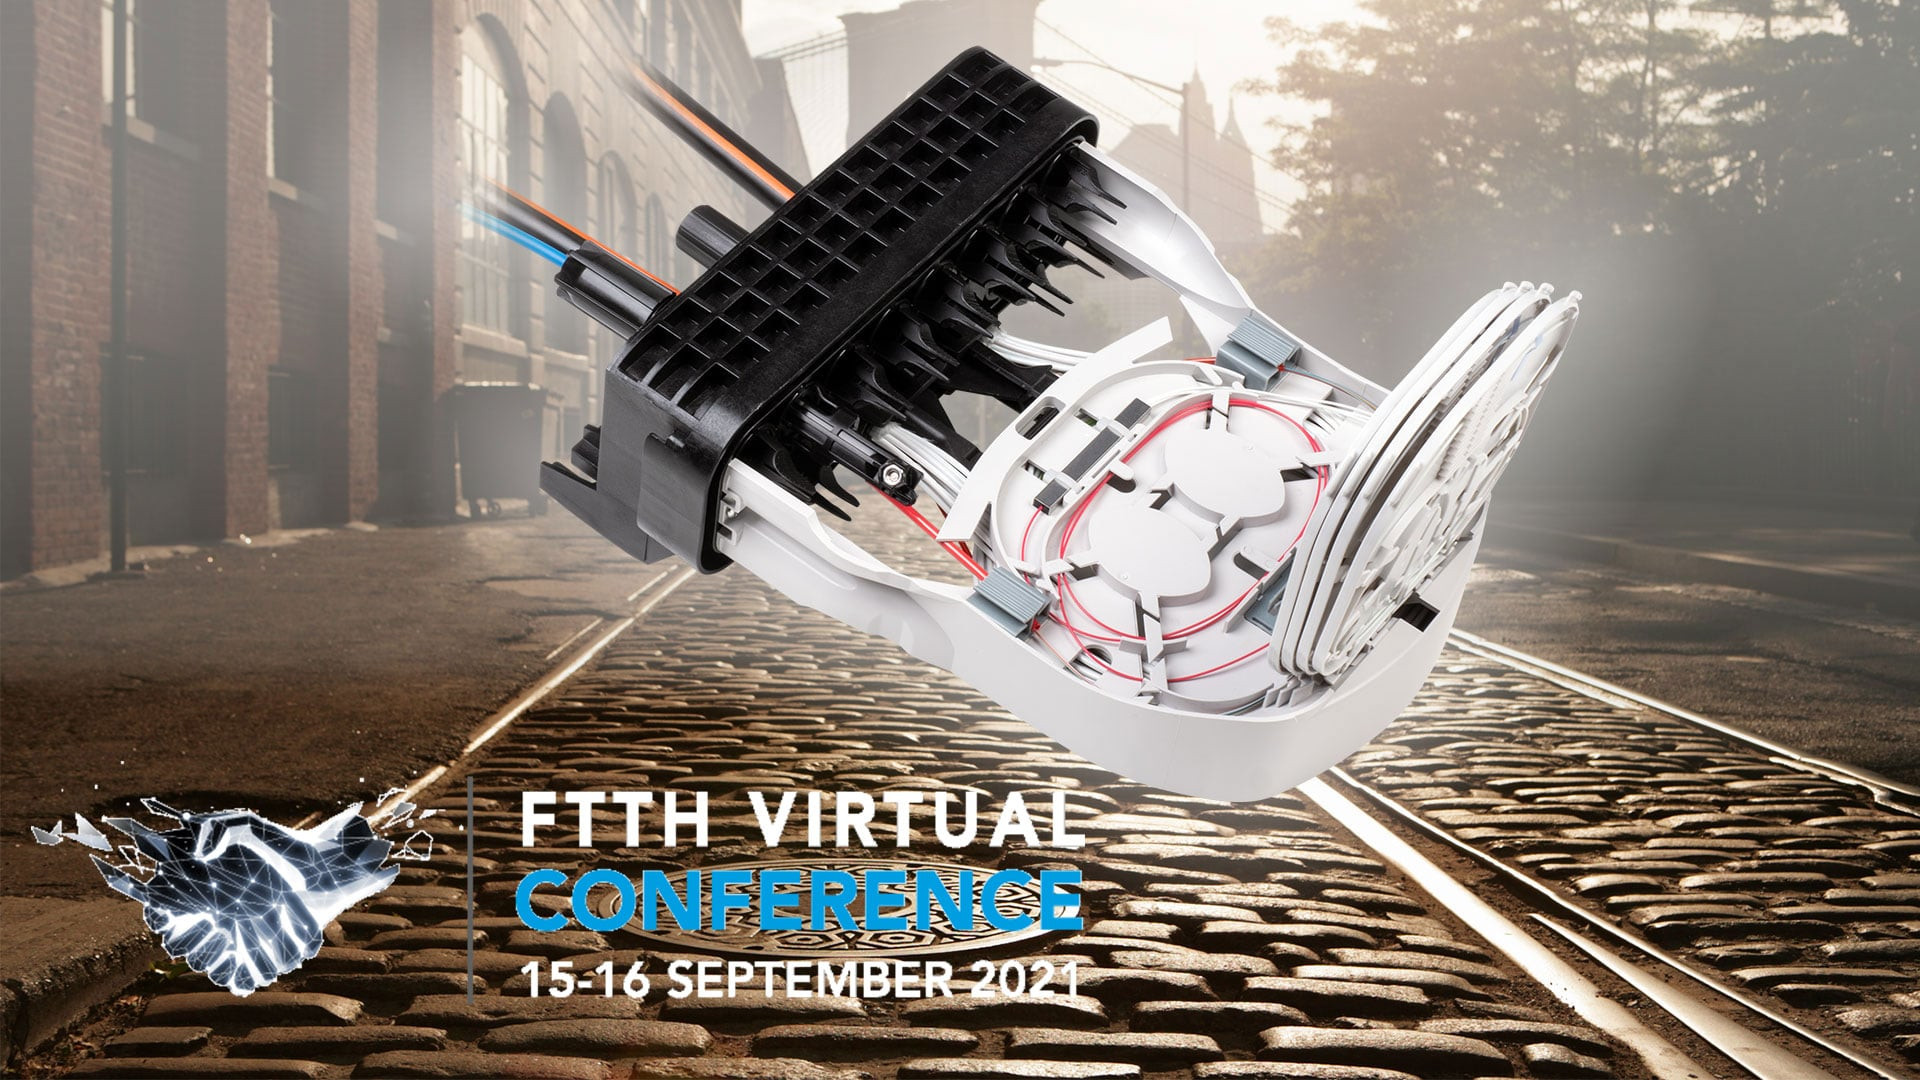 R&M is presenting the ZOONA closure at the FTTH Virtual Conference 2021. Gold sponsor of the world's largest specialist congress for the broadband industry. Expanding the fiber optic network remains the key issue and is more urgent than ever before.